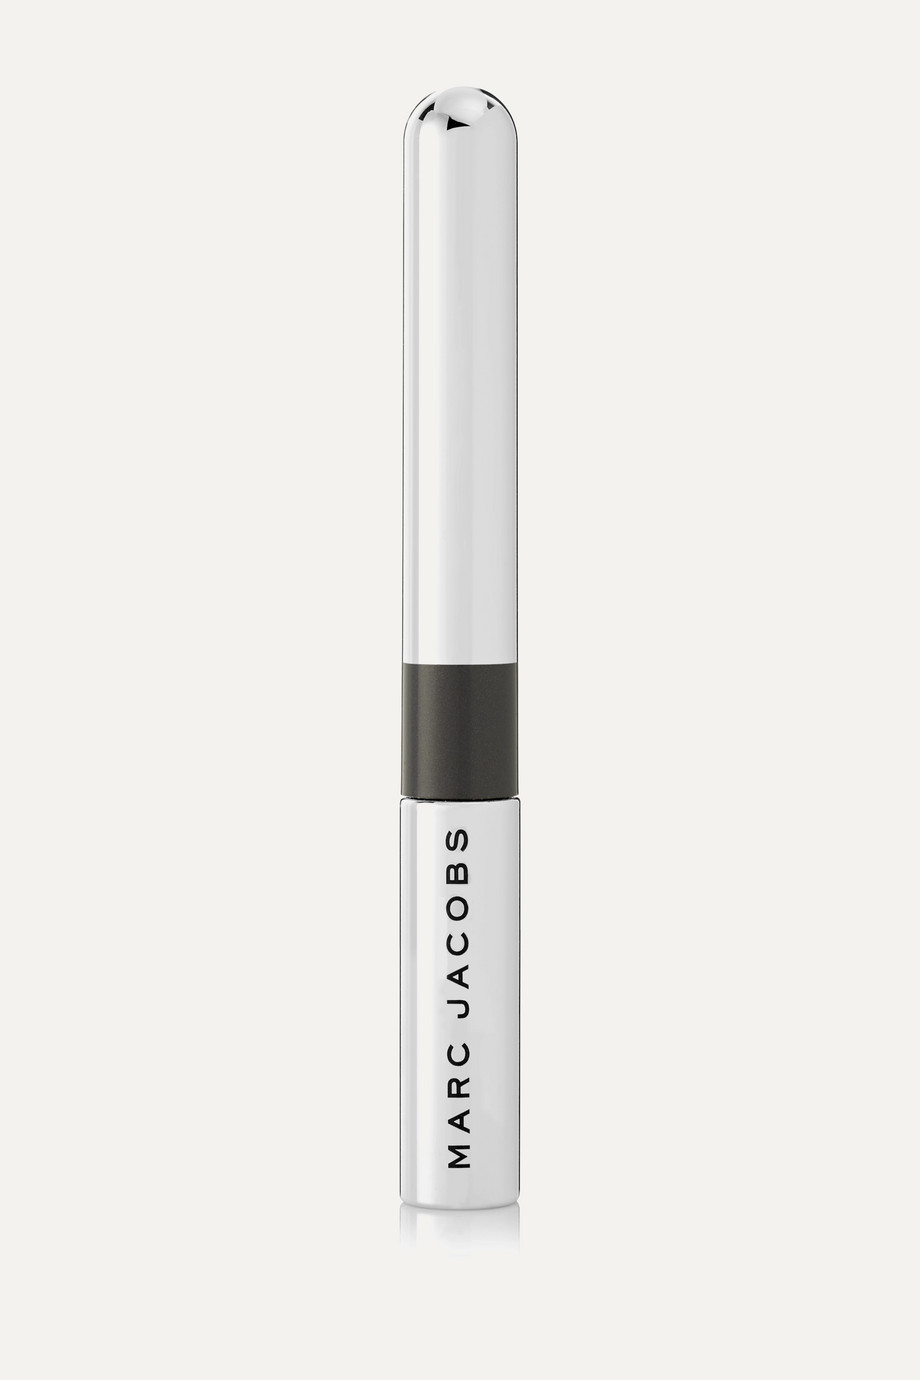 Marc Jacobs Beauty Highliner Liquid-Gel Eyeliner - Steel the Show 30